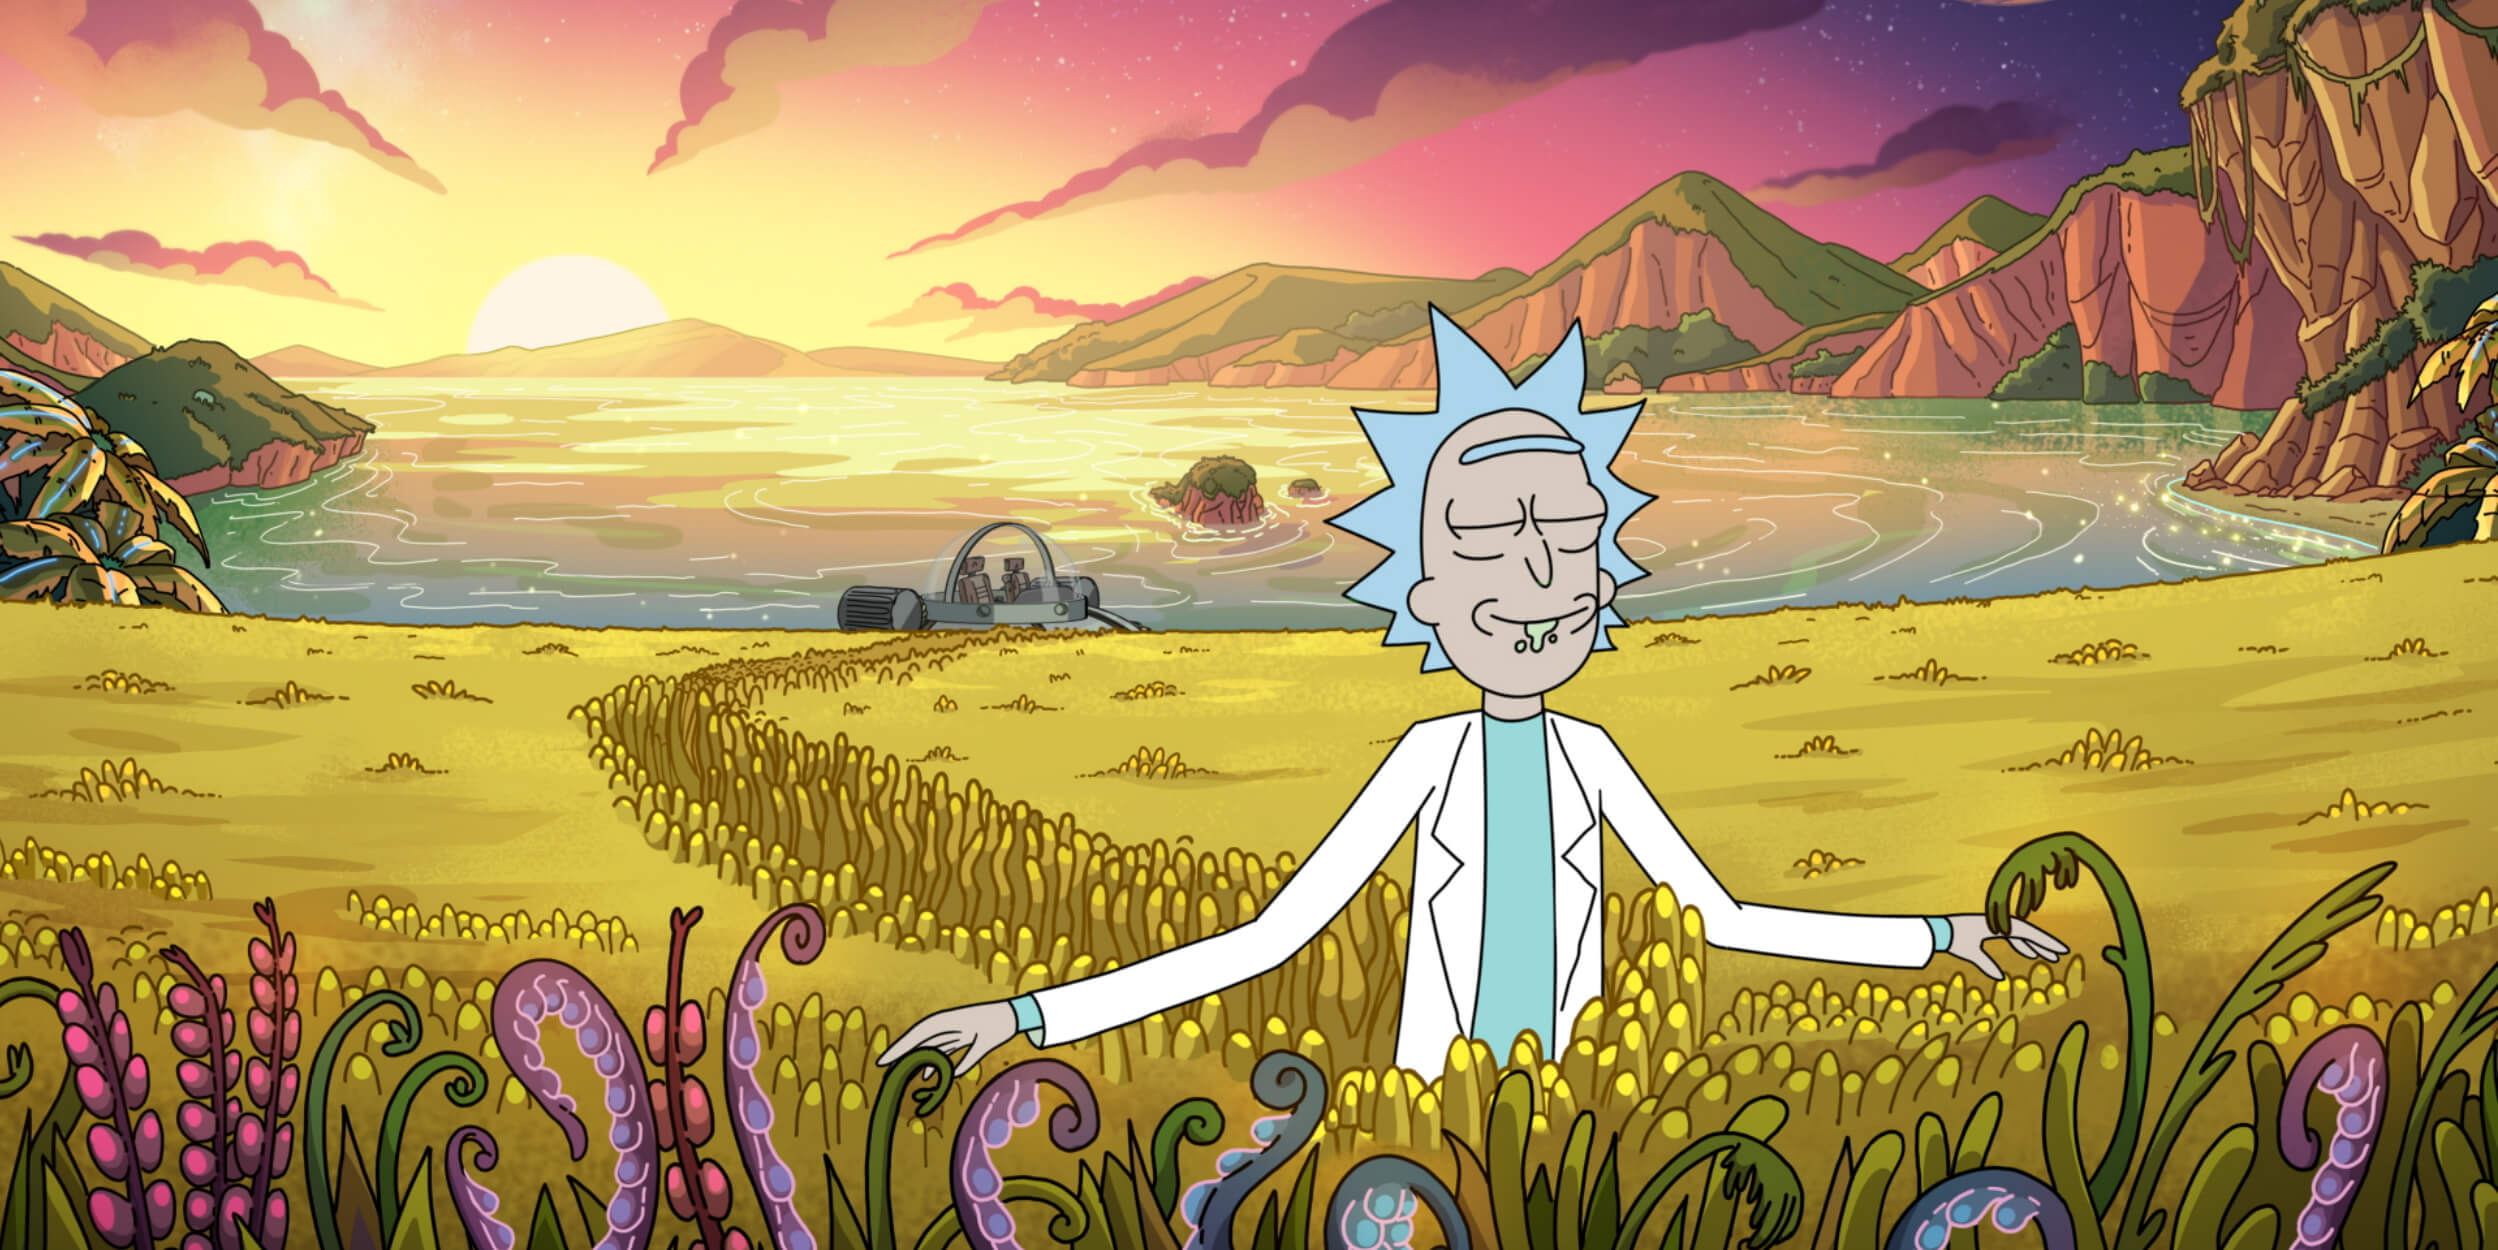 Here are the Episode Titles for 'Ricky and Morty' Season 4